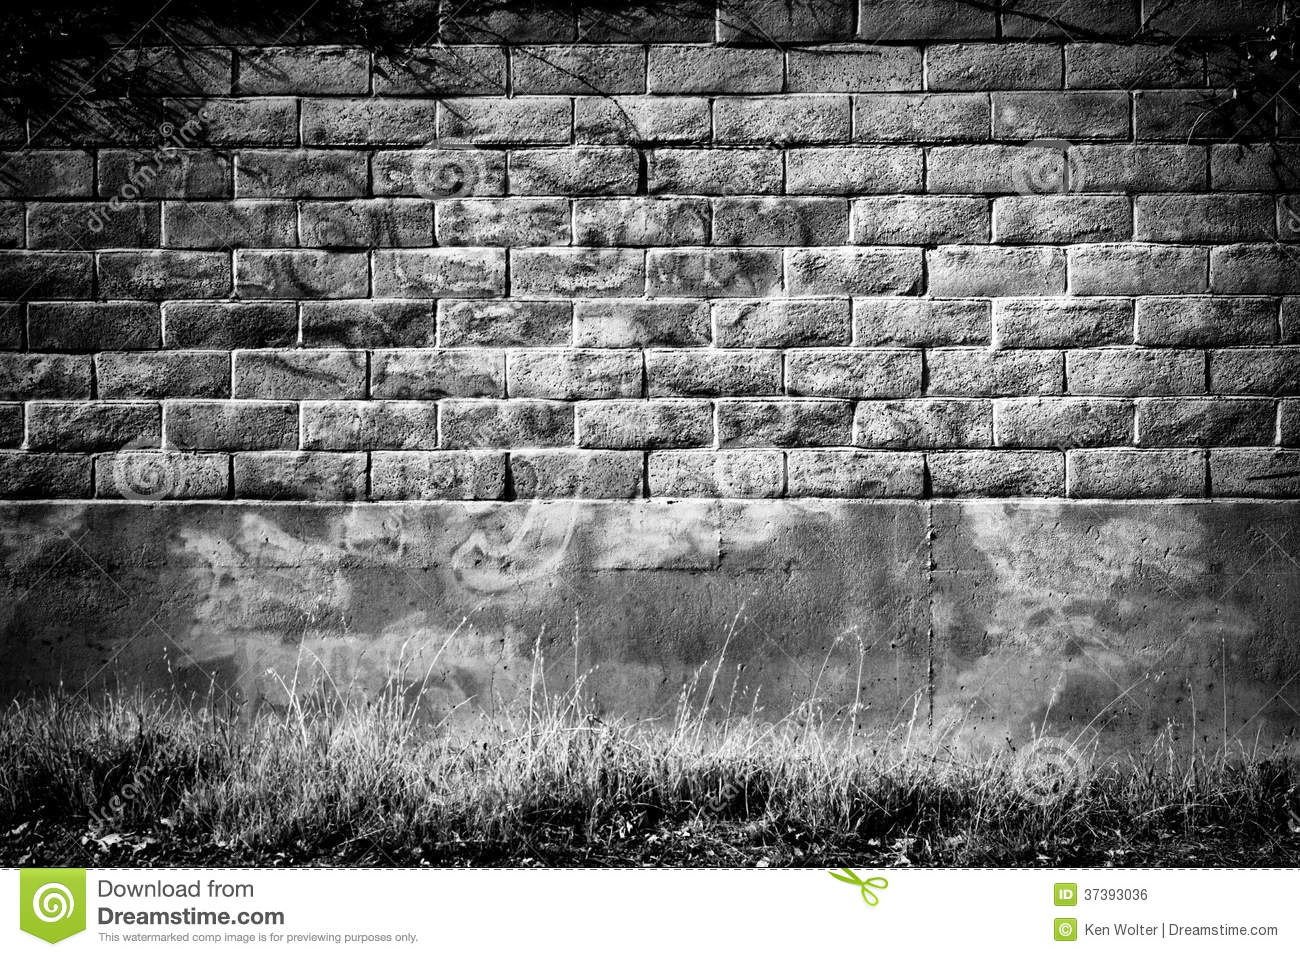 Distressed brick wall backdrop or background in infrared black and white